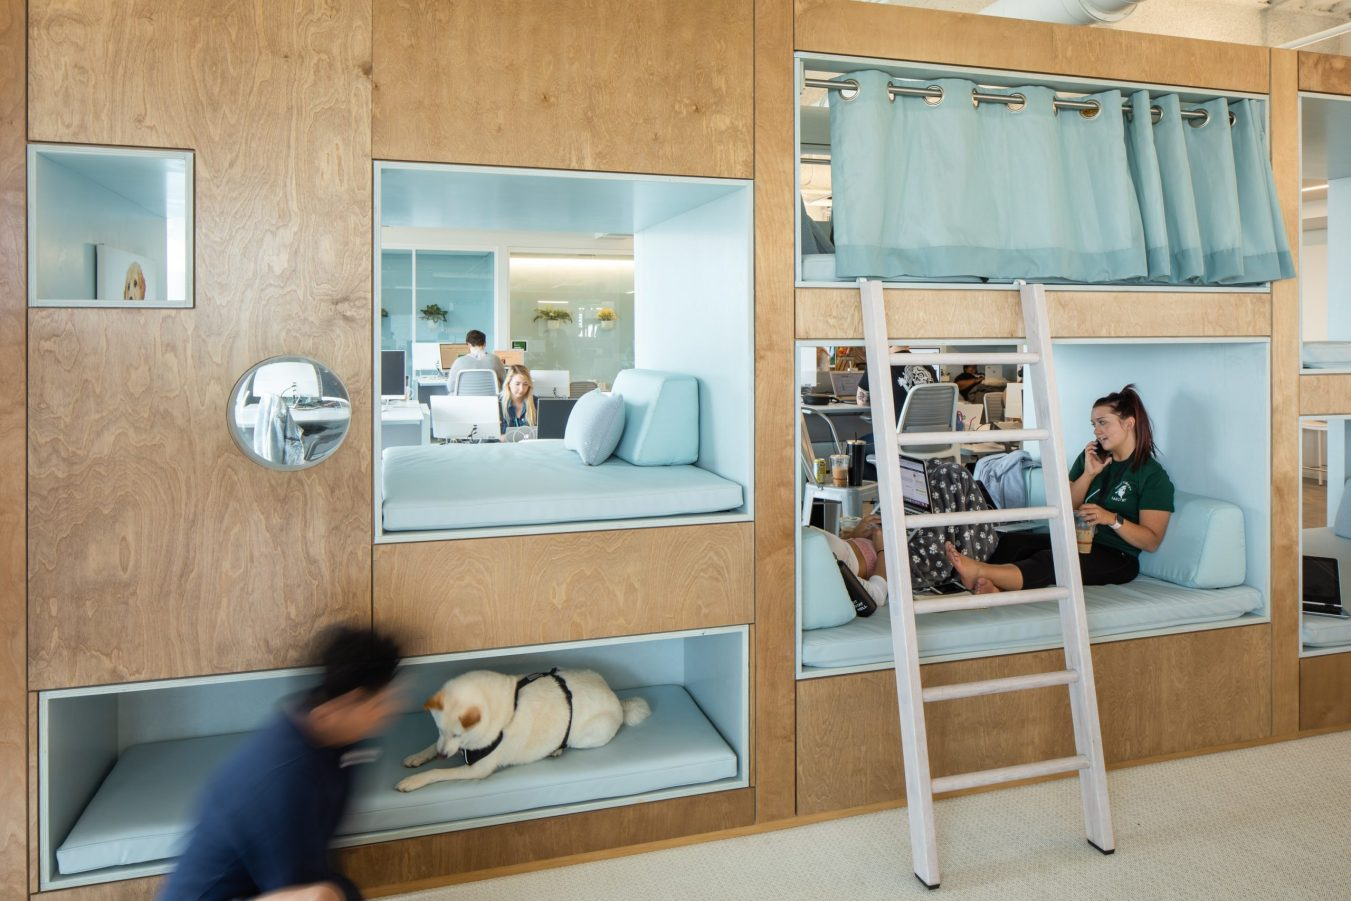 Employees and dogs enjoy cubbie spaces at Bark + Co.